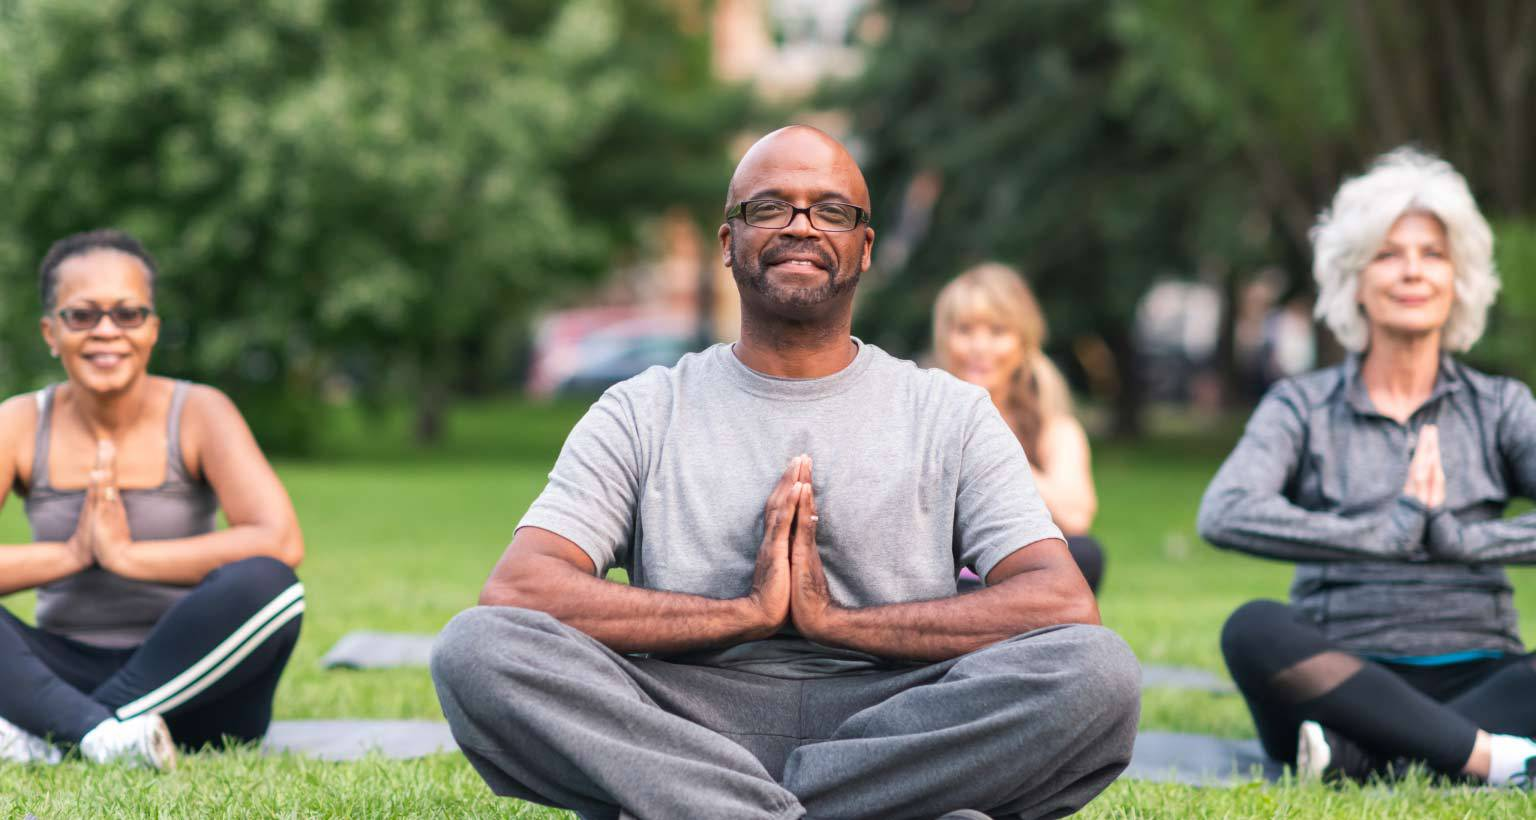 community wellness program with people meditating in the park